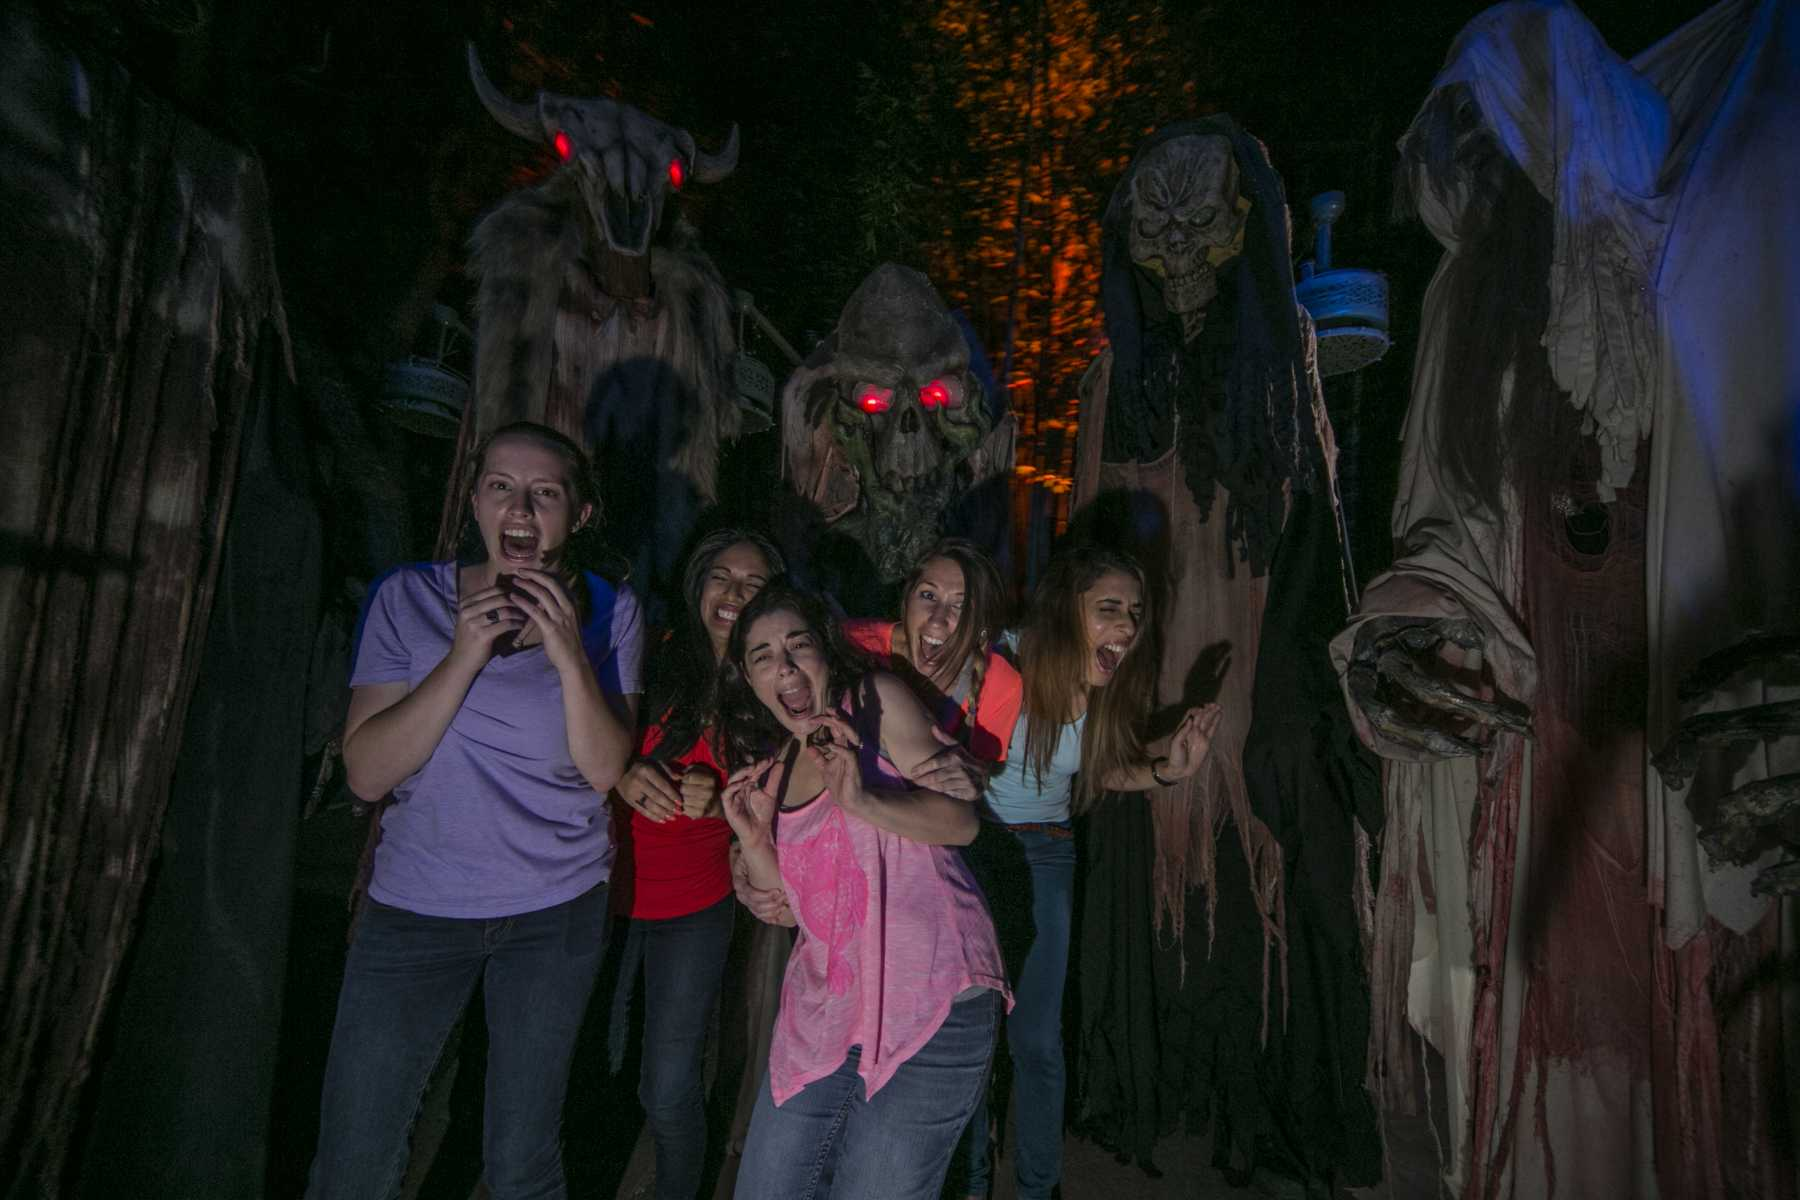 Busch Gardens Event 'Howl-O-Scream' Is Truly Cursed With New Interactive Haunts | howl-o-scream